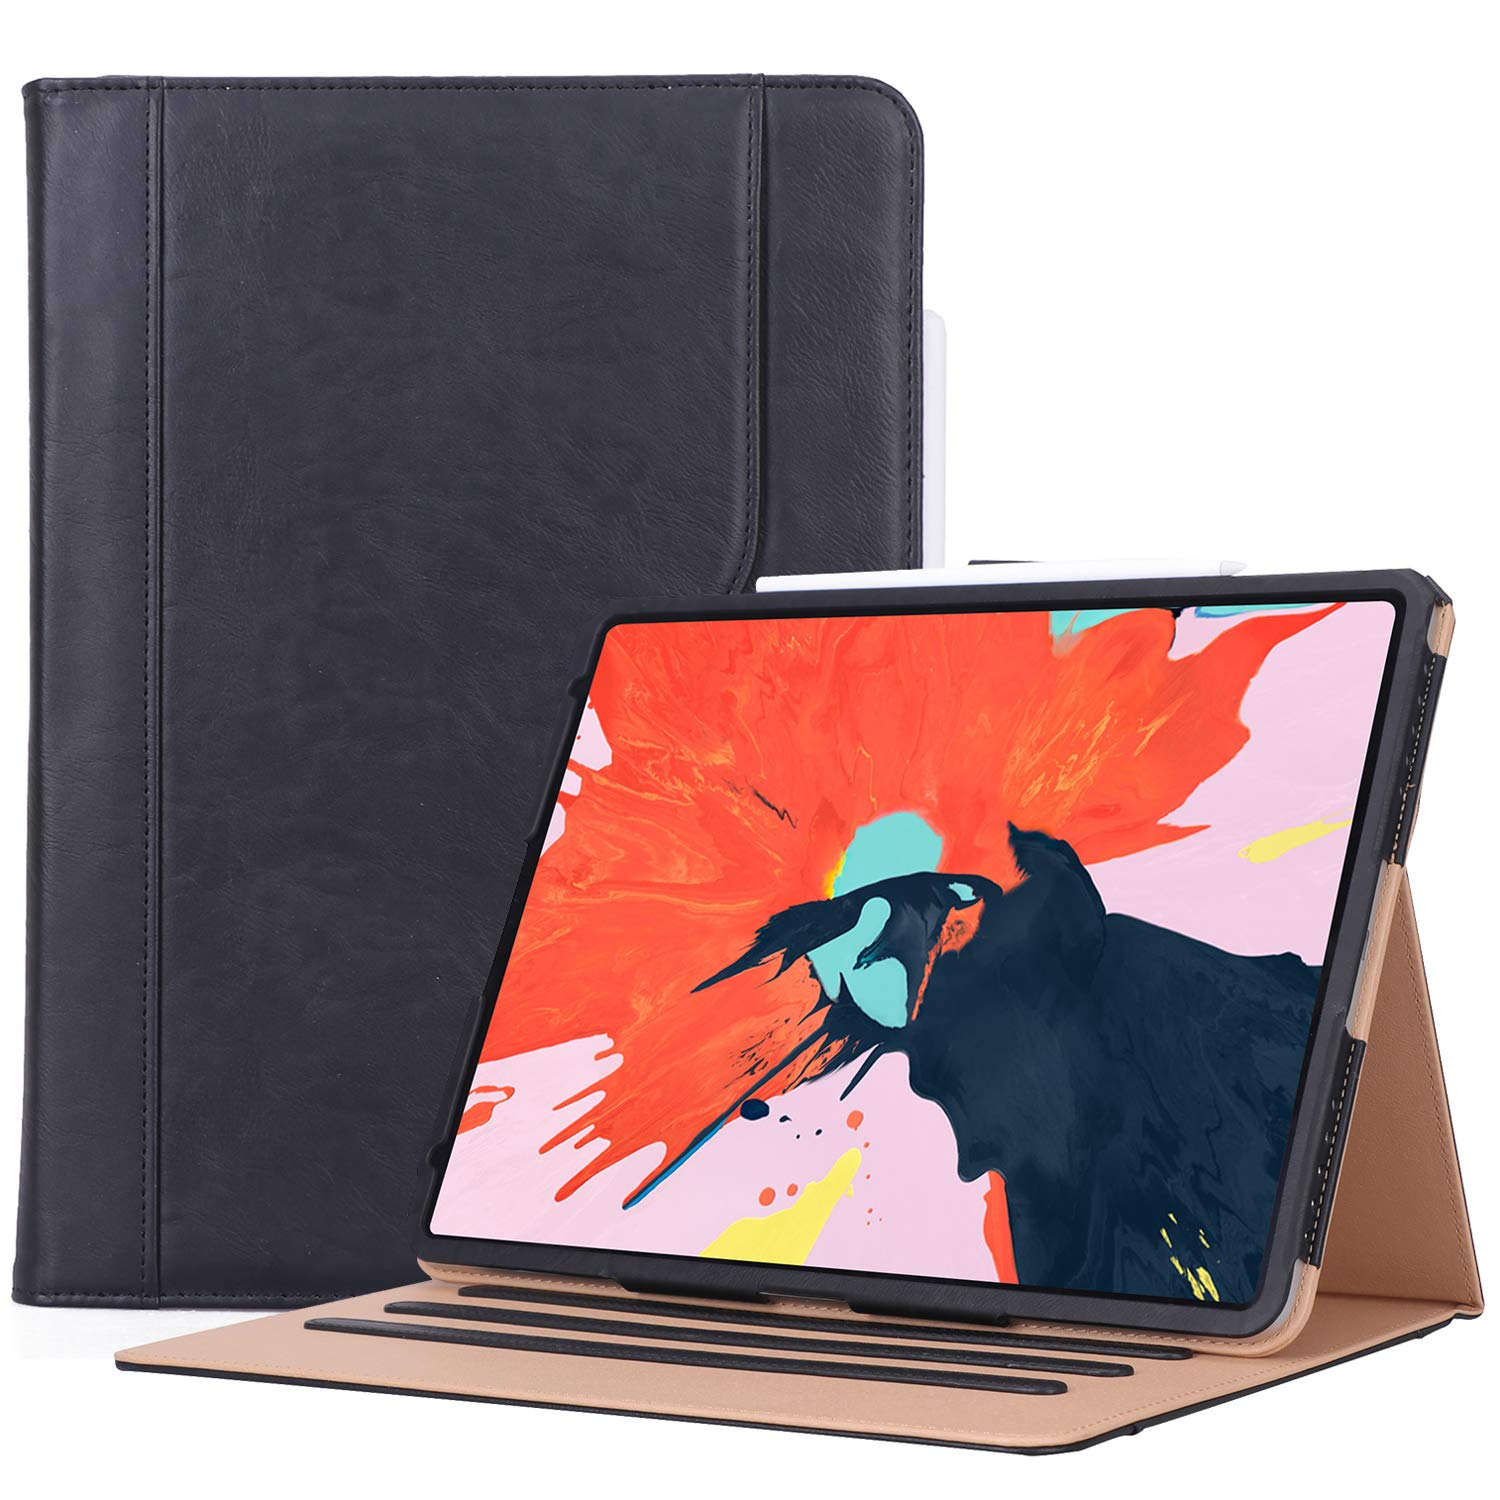 The ProCase folio for 12.9-inch iPad Pro